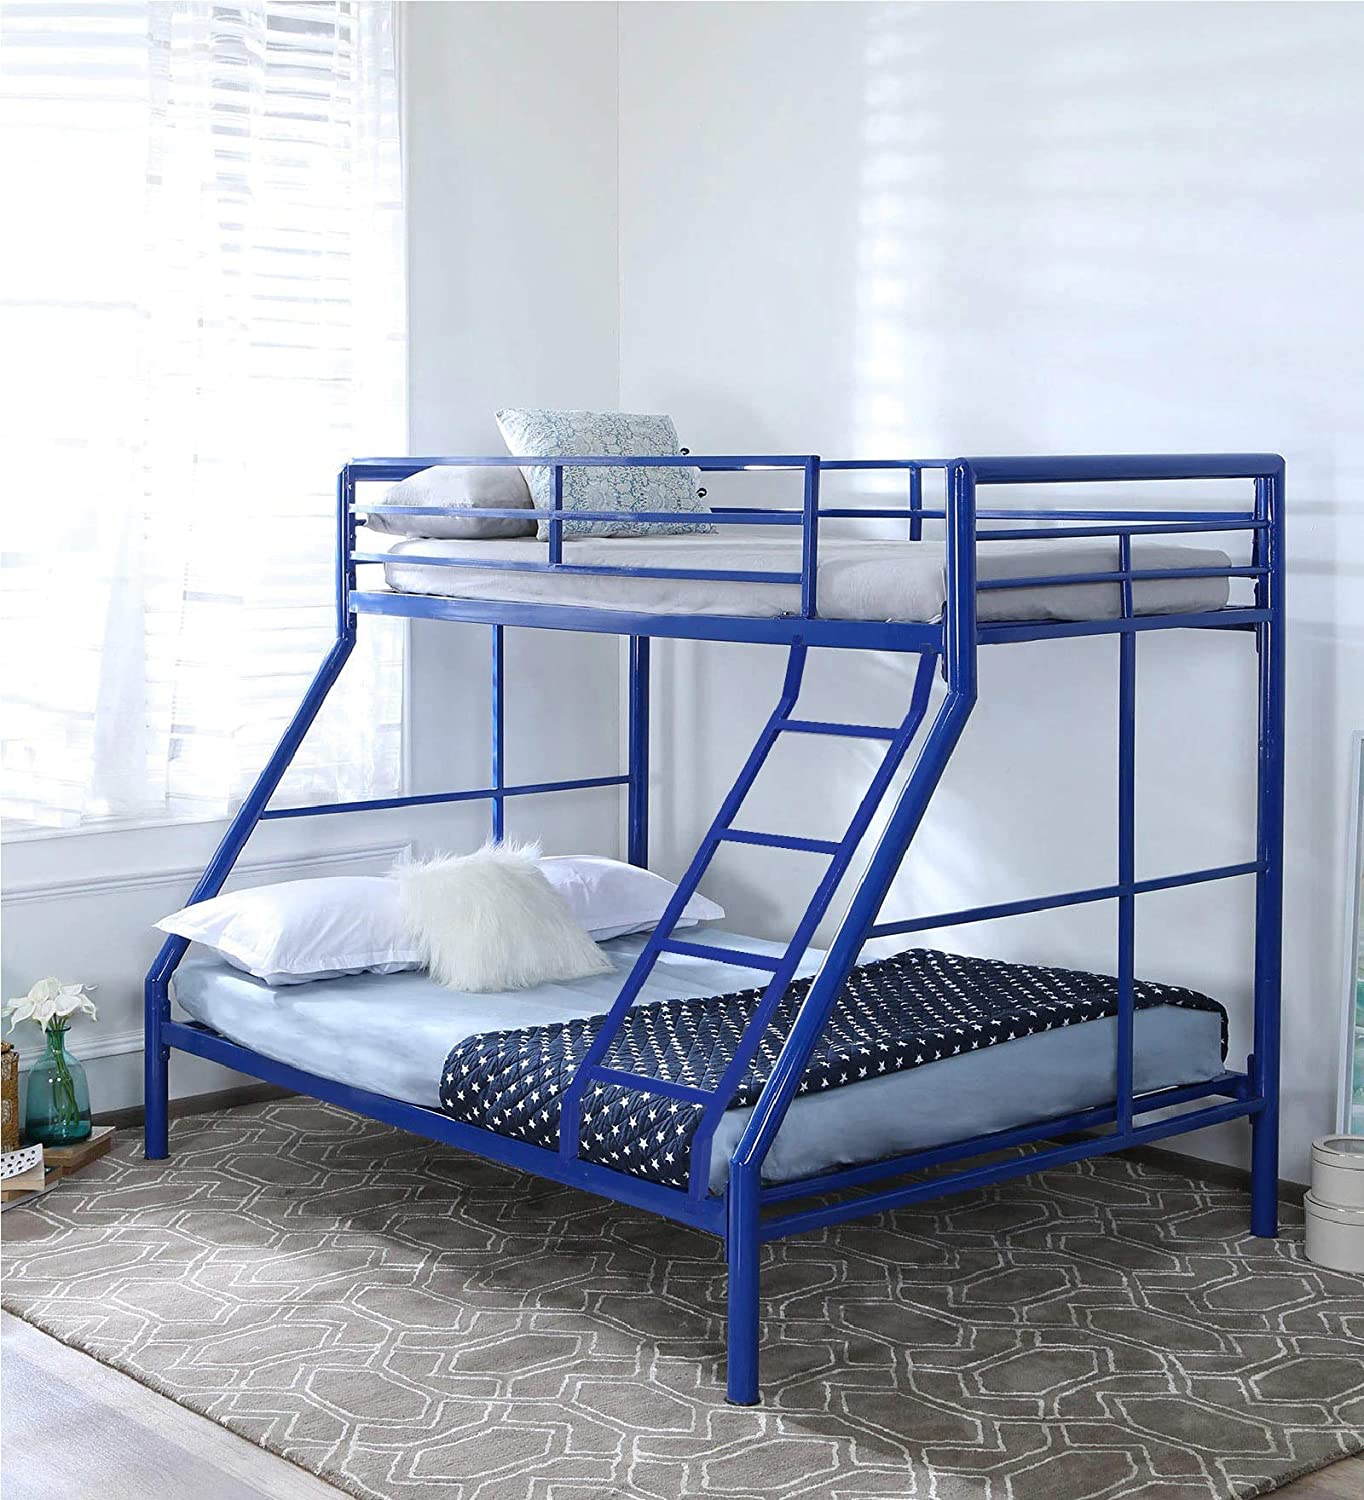 Royal Interiors Parsons Twin Metal Bunk Cot Bed Queen Bottom And Single Top Frame Only Mattress Not Included Amazon In Home Kitchen